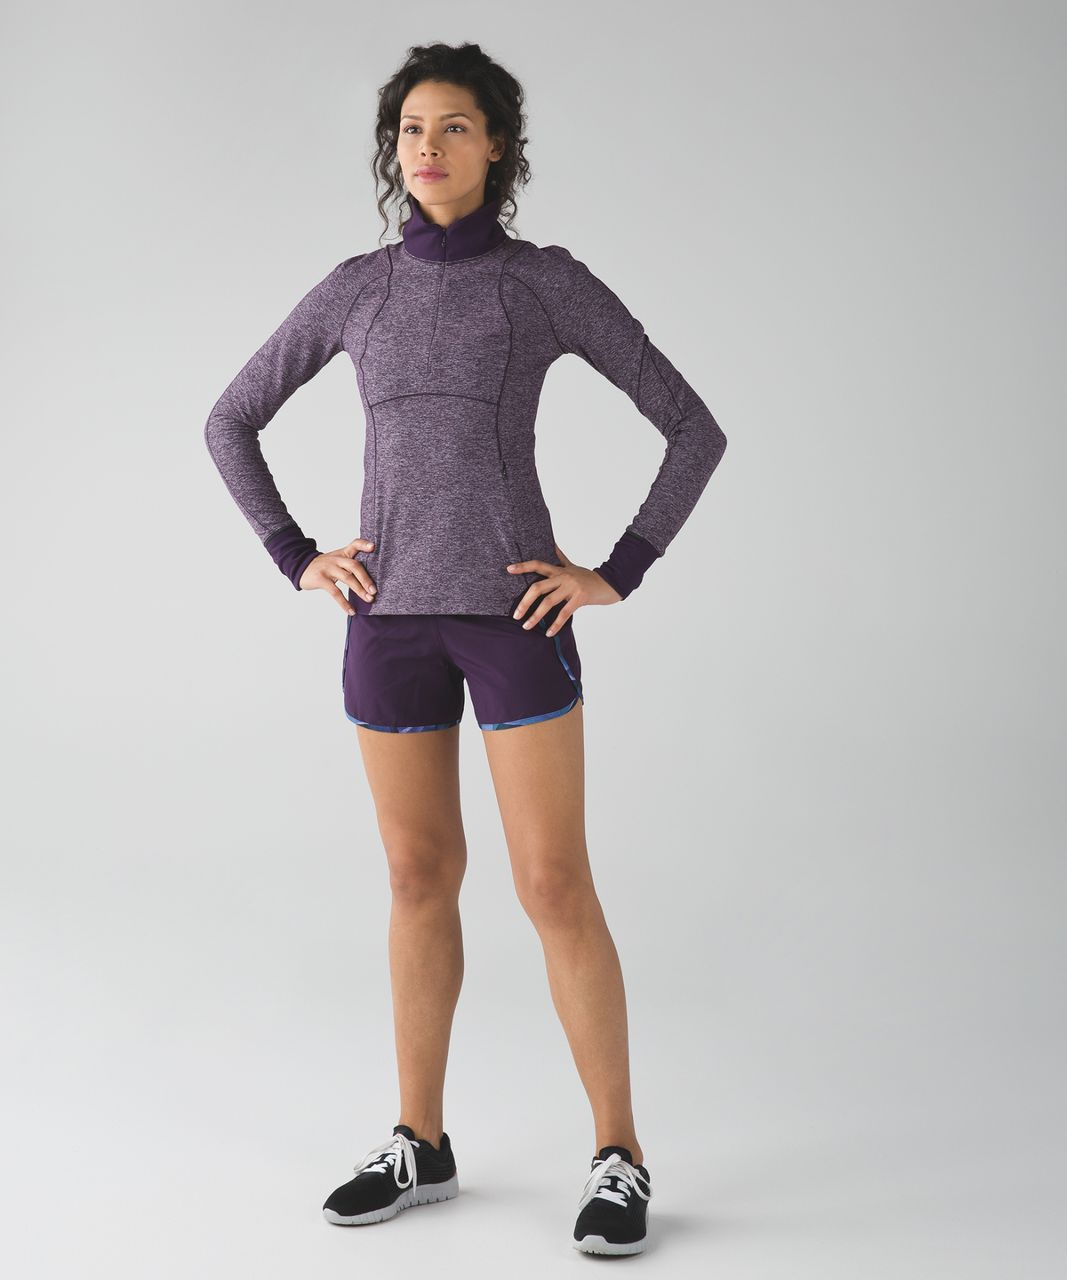 Lululemon Run Times Short *4-way Stretch - Deep Zinfandel / Pretty Prism Multi